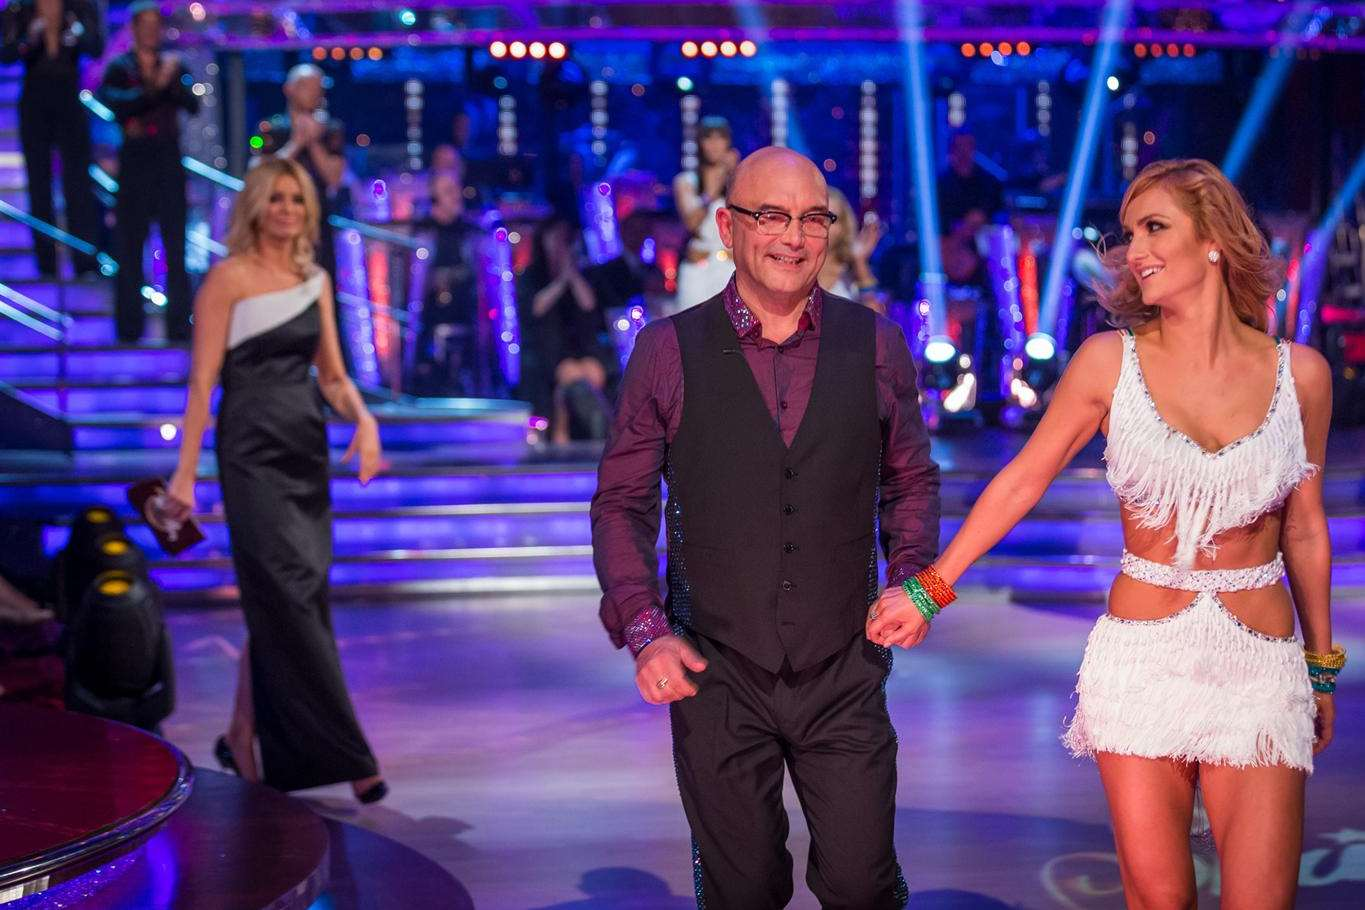 Gregg was paired with Aliona Vilani